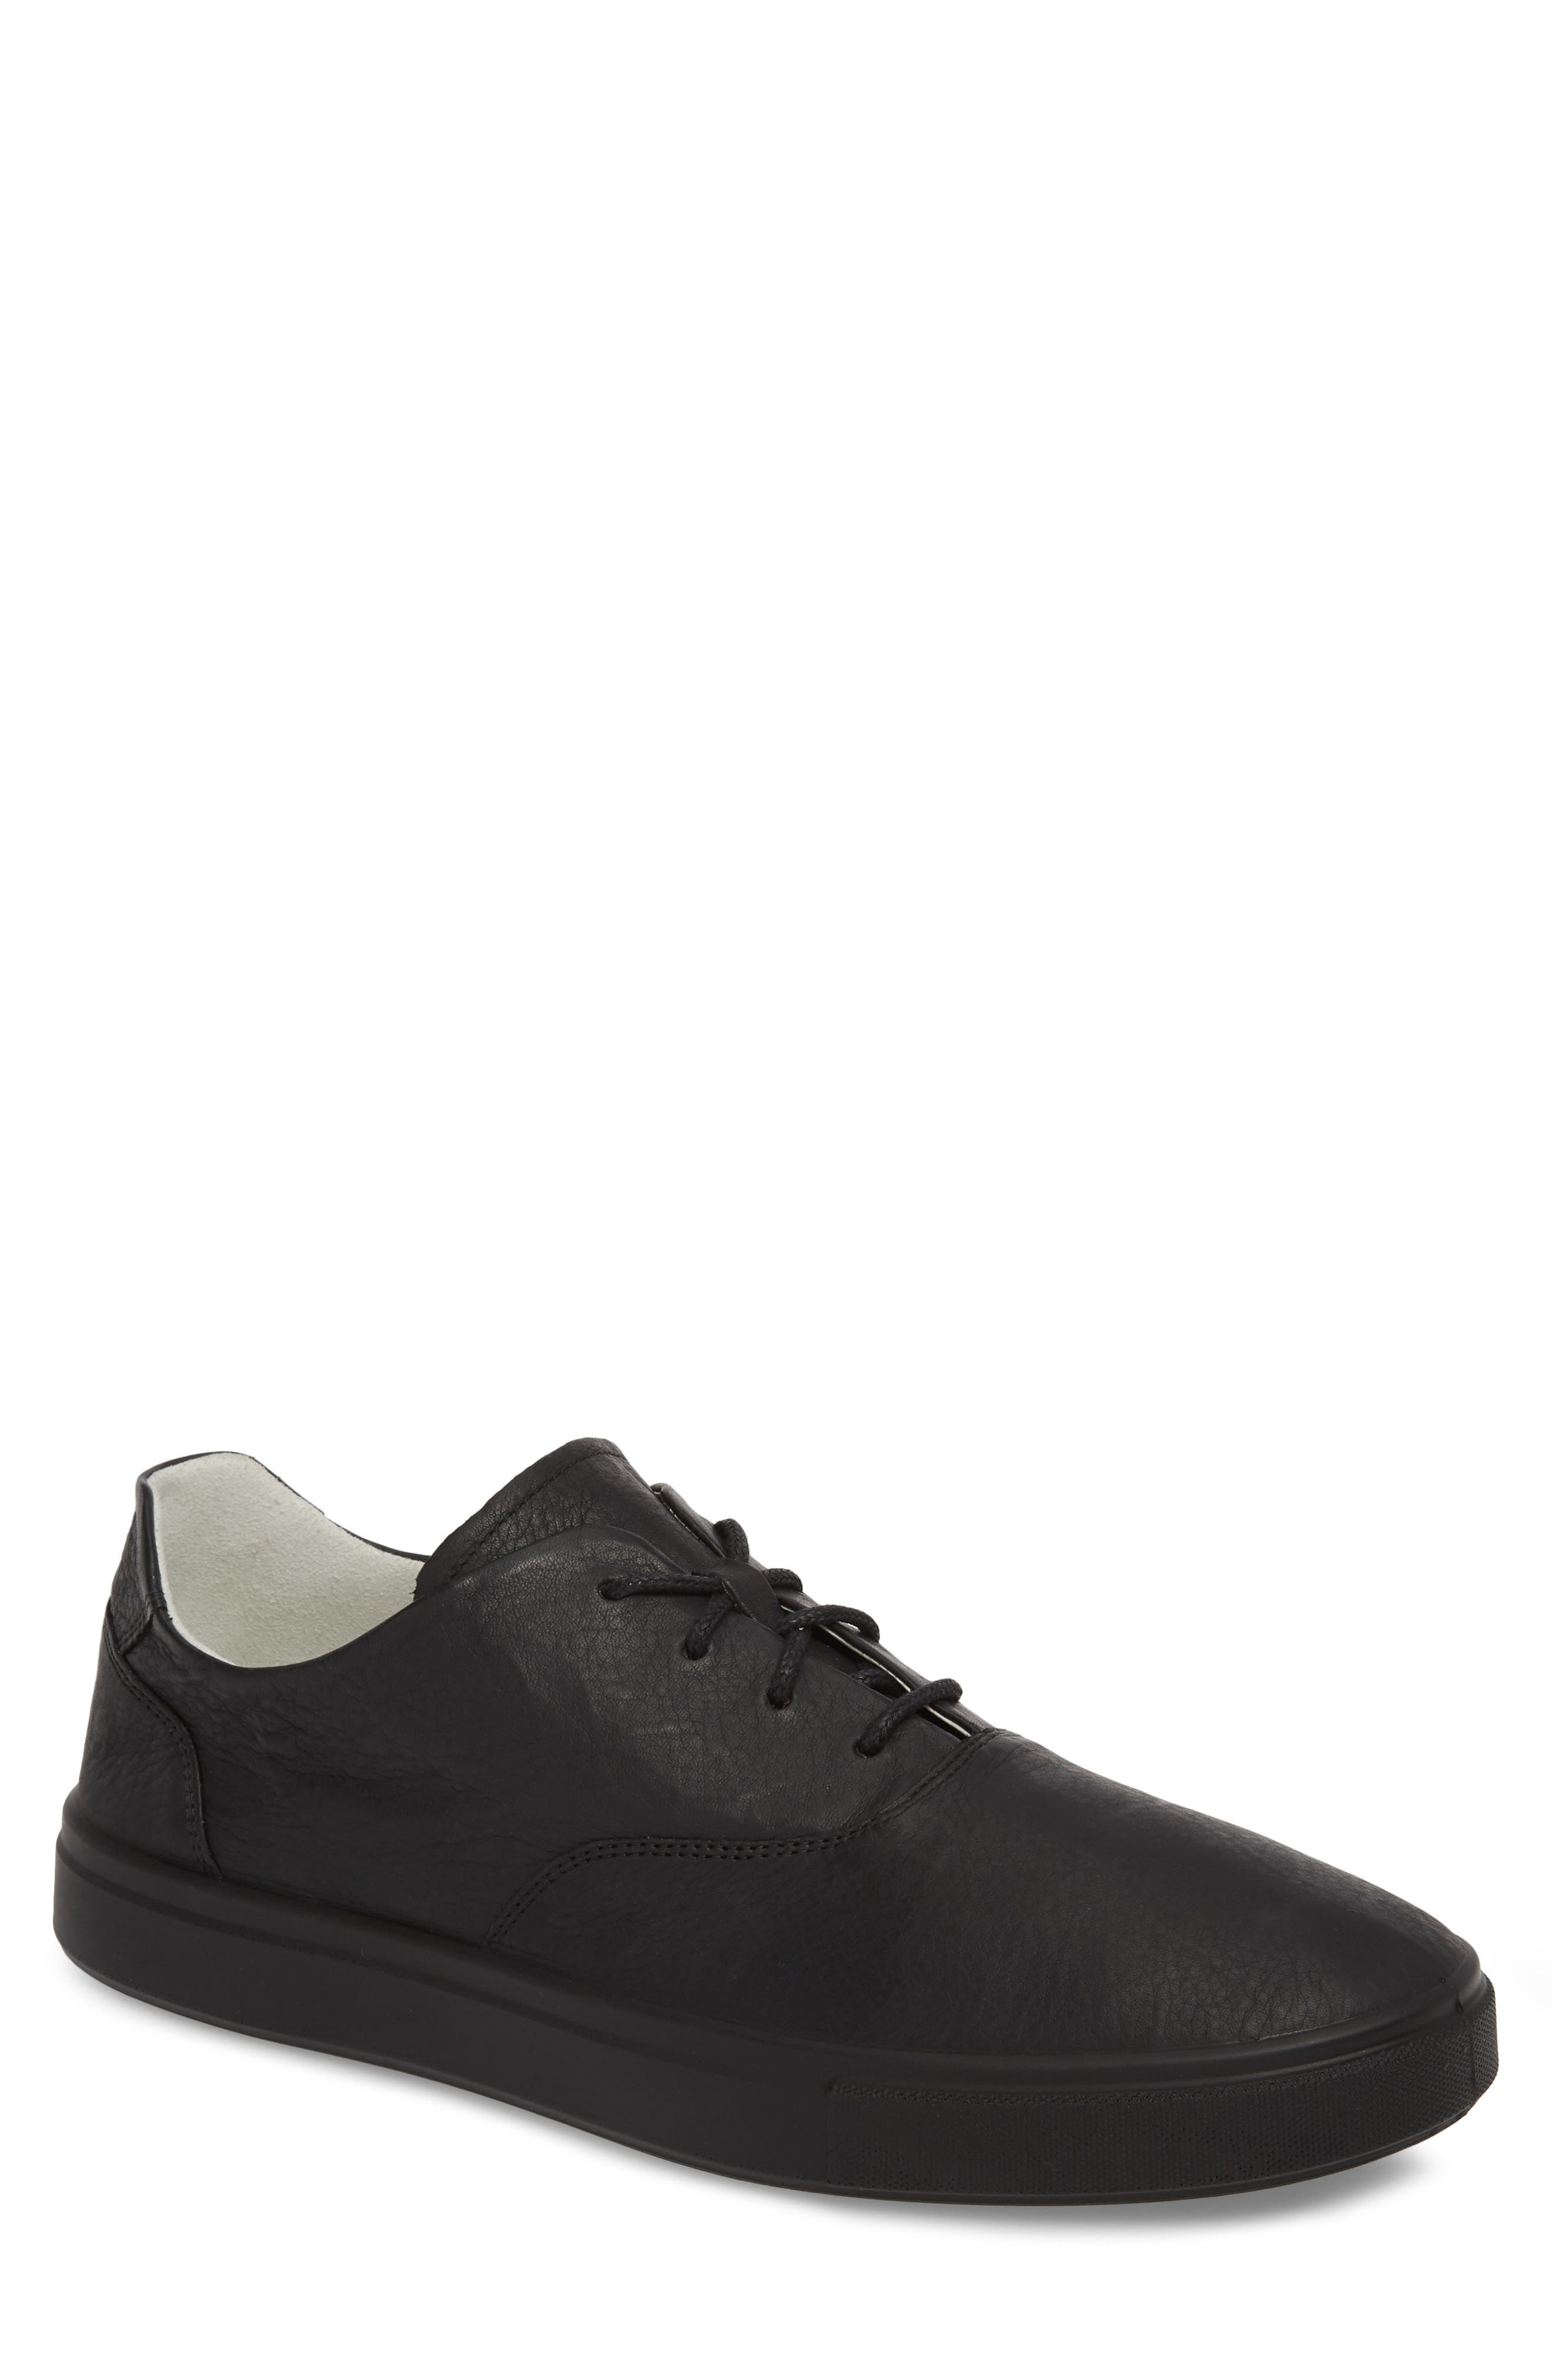 Kyle Low Top Sneaker,                         Main,                         color, Rinsed Black Leather